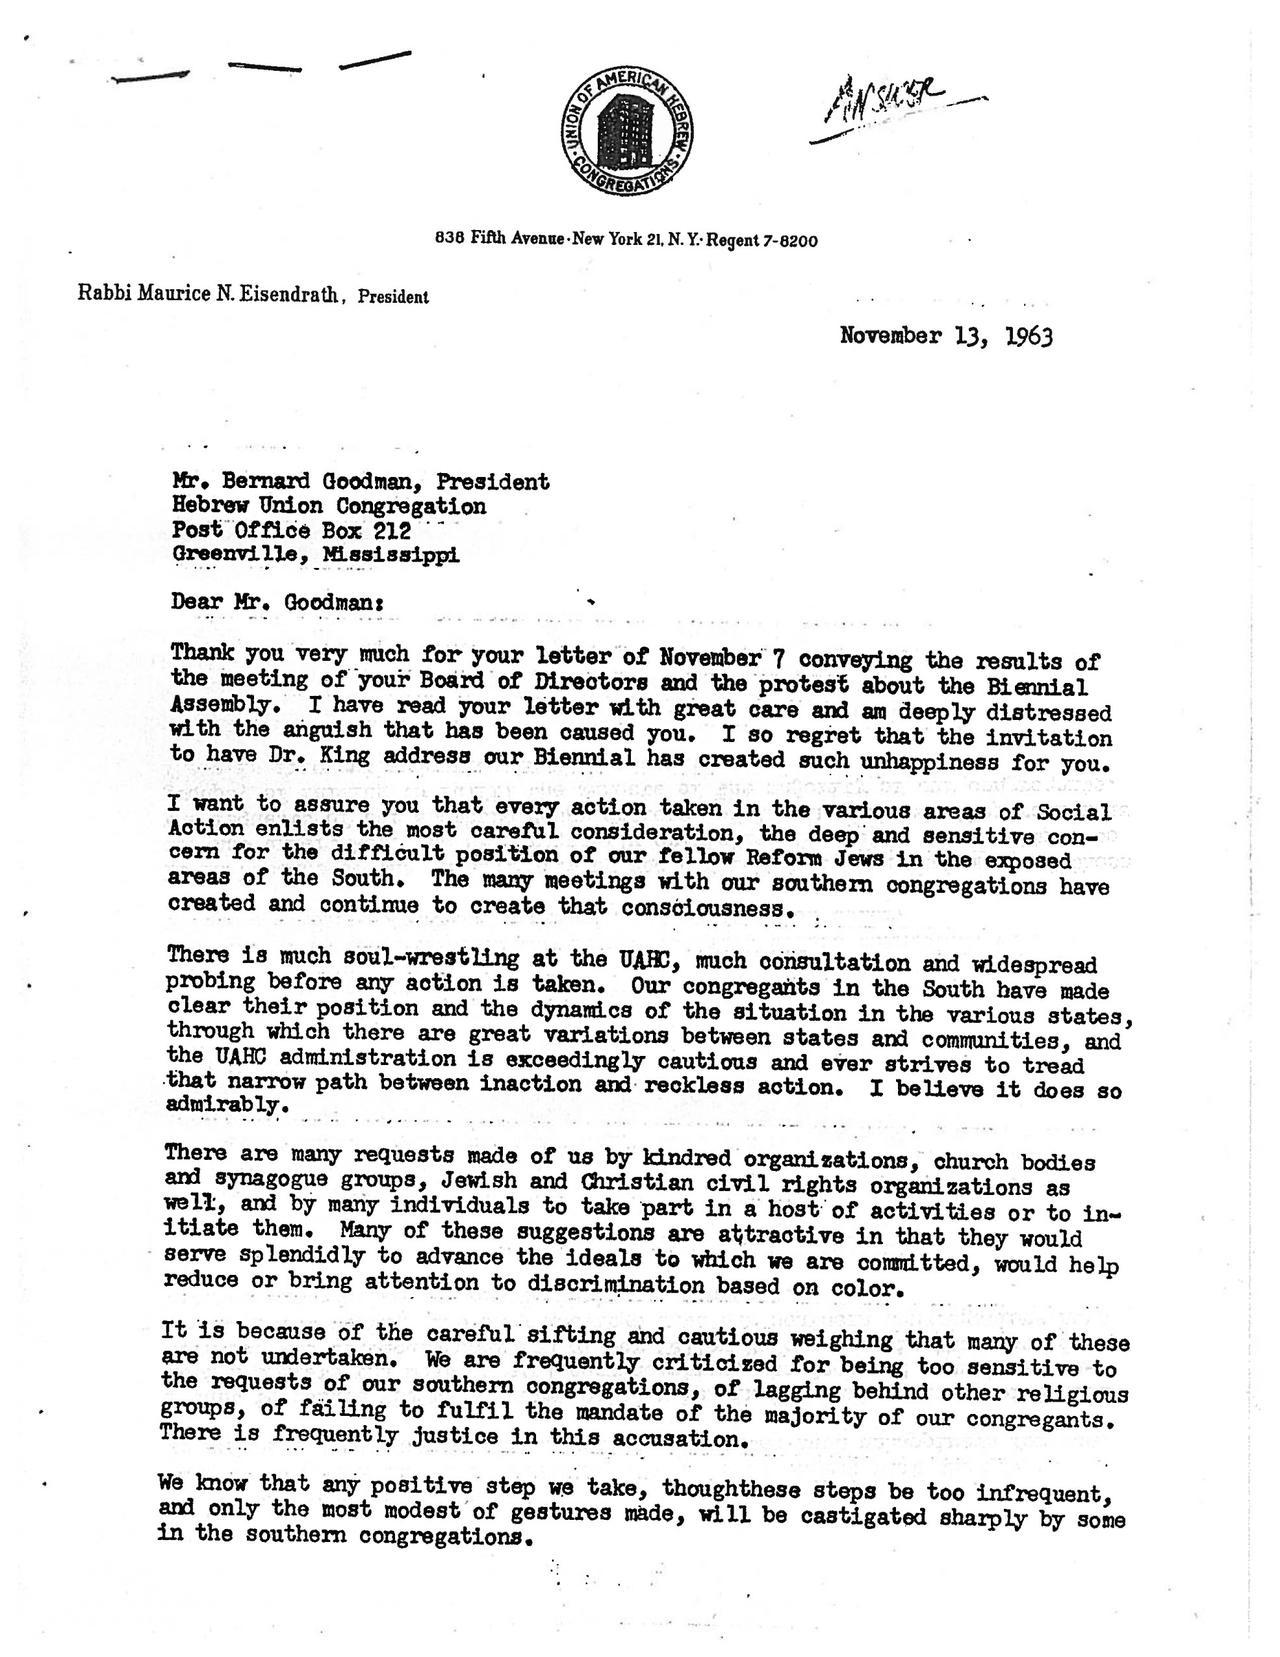 Letter from Rabbi Eisendrath to Bernard Goodman, November 13, 1963, page 1 of 2